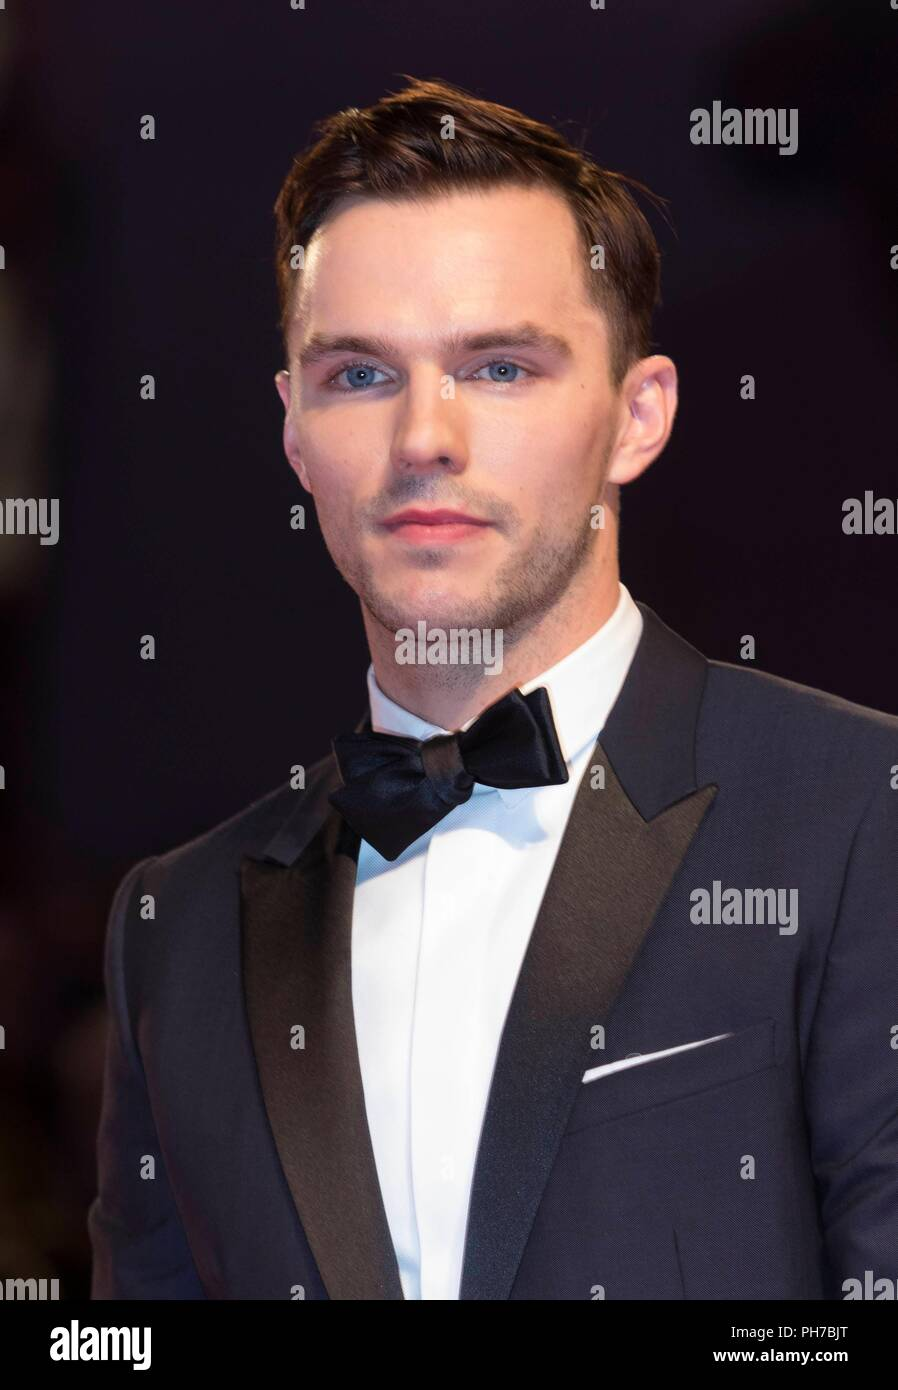 Venice, Italy. 30th Aug, 2018. Nicholas Hoult attends the premiere of 'The Favourite' during the 75th Venice Film Festival at Palazzo del Cinema in Venice, Italy, on 30 August 2018. | usage worldwide Credit: dpa/Alamy Live News - Stock Image